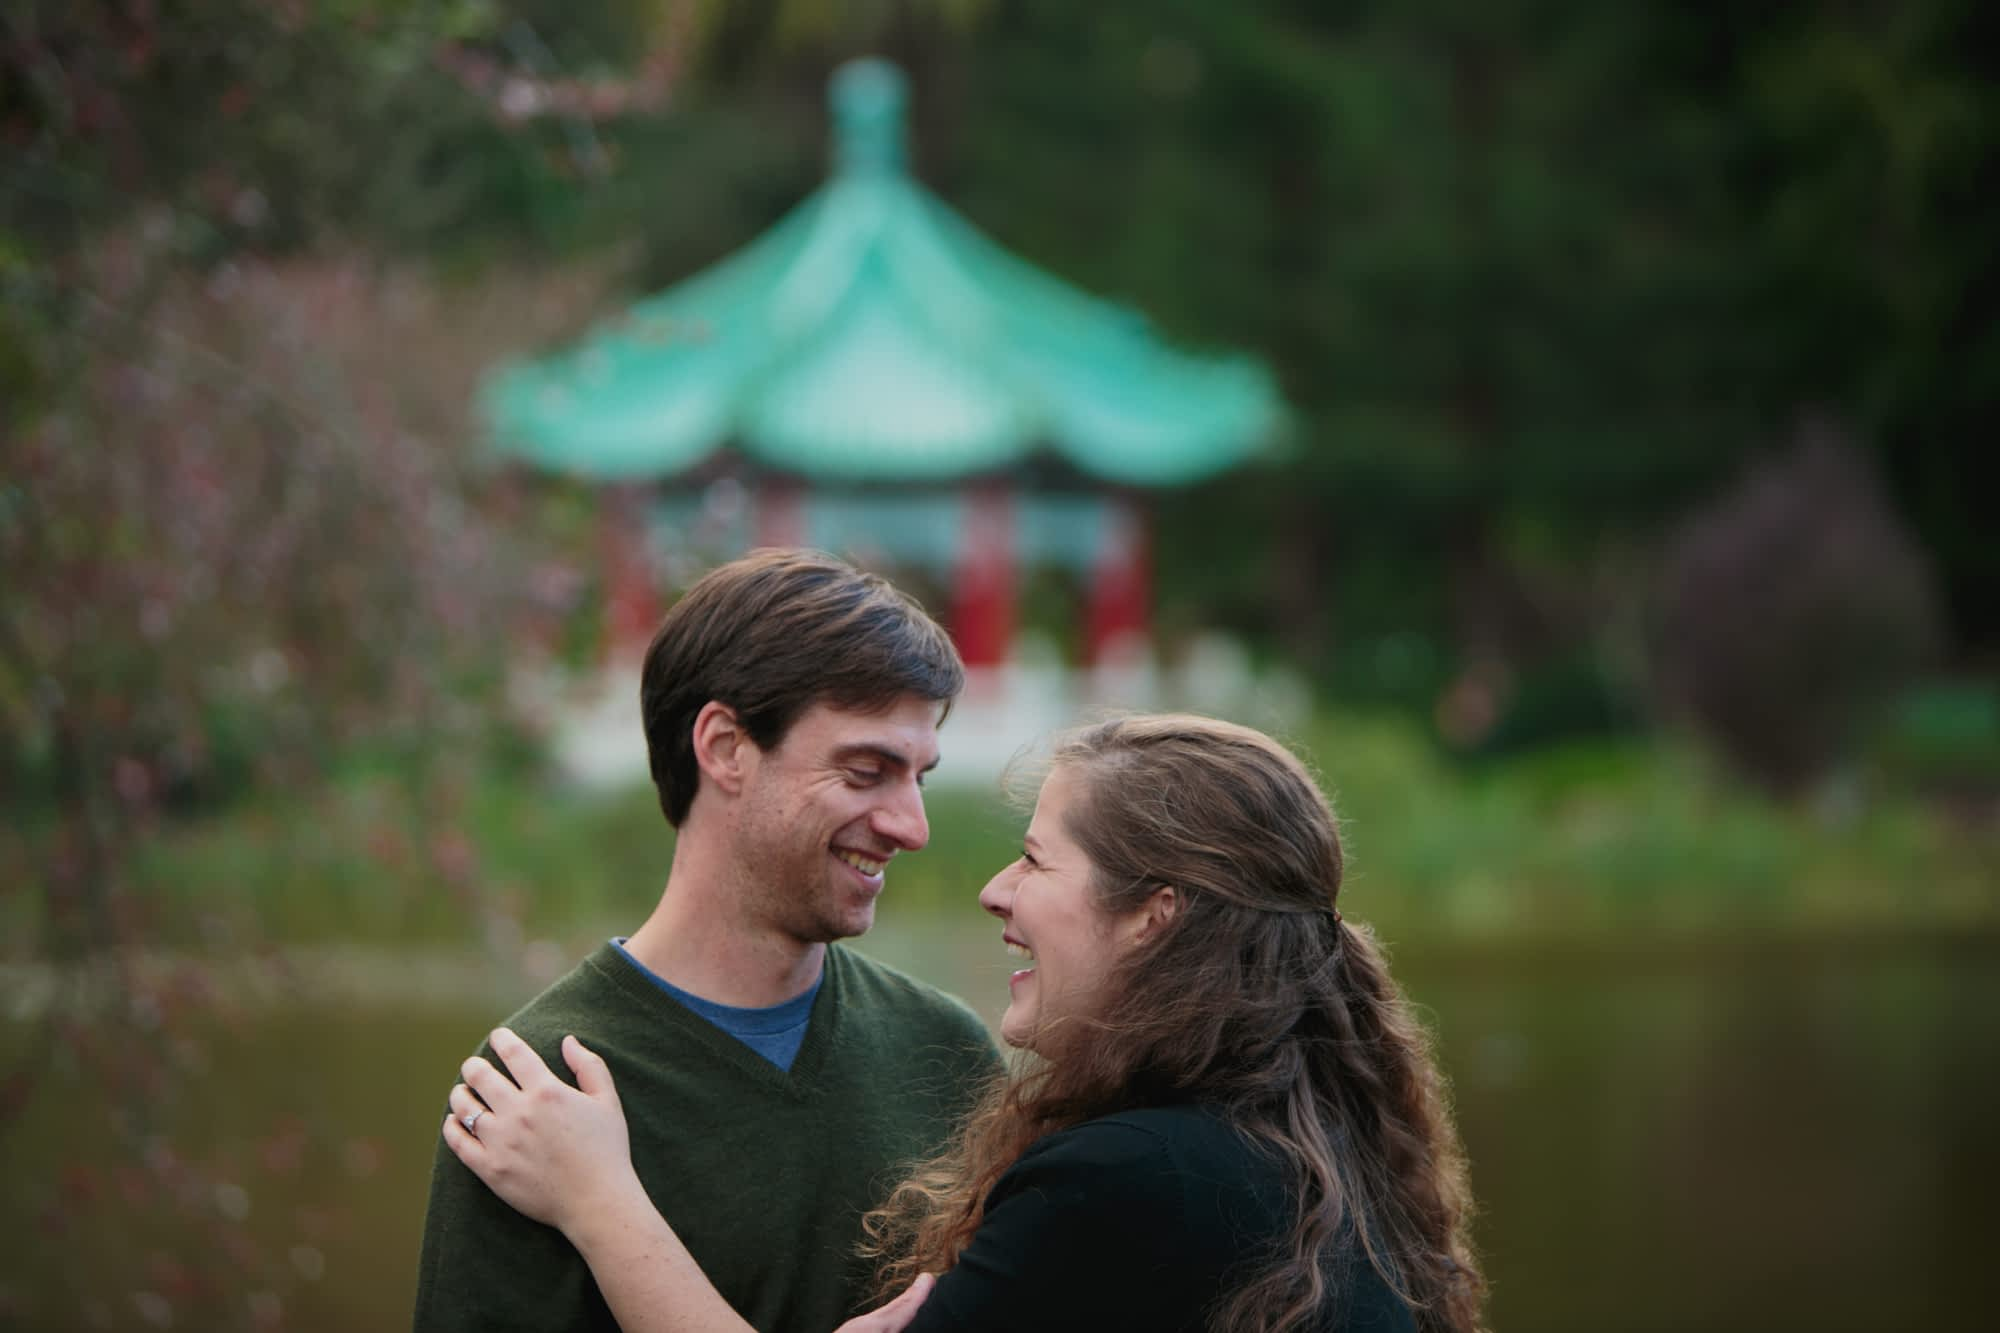 The engaged couple are laughing with each other in front of the Chinese Pavilion at Stow Lake.